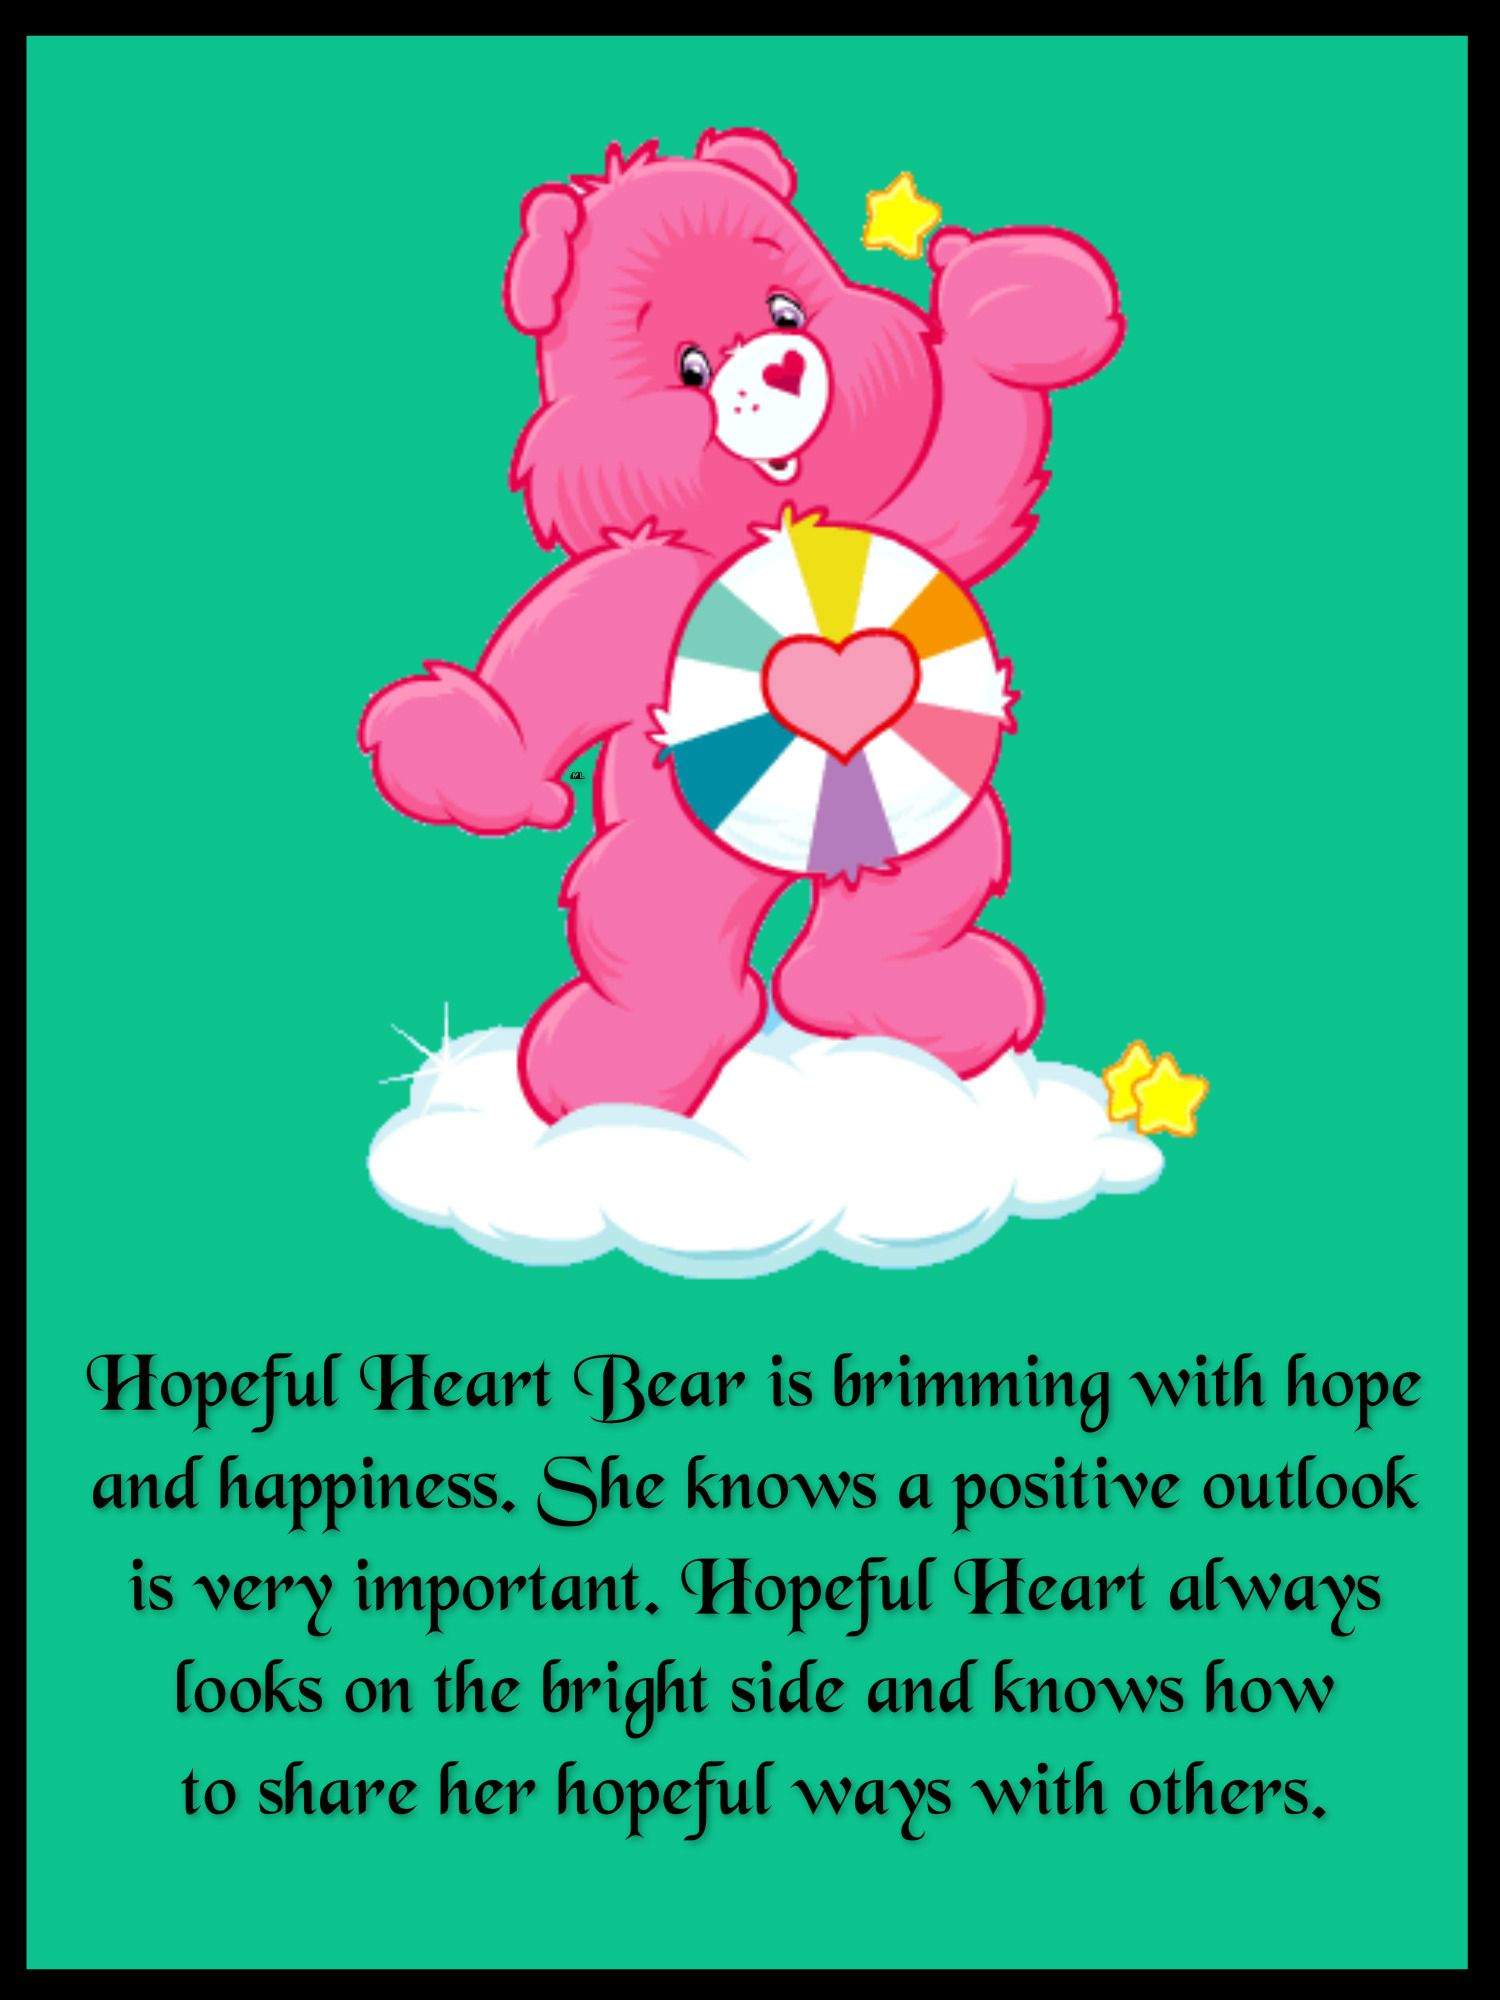 Hopeful Heart Bear is brimming with hope and happiness ...